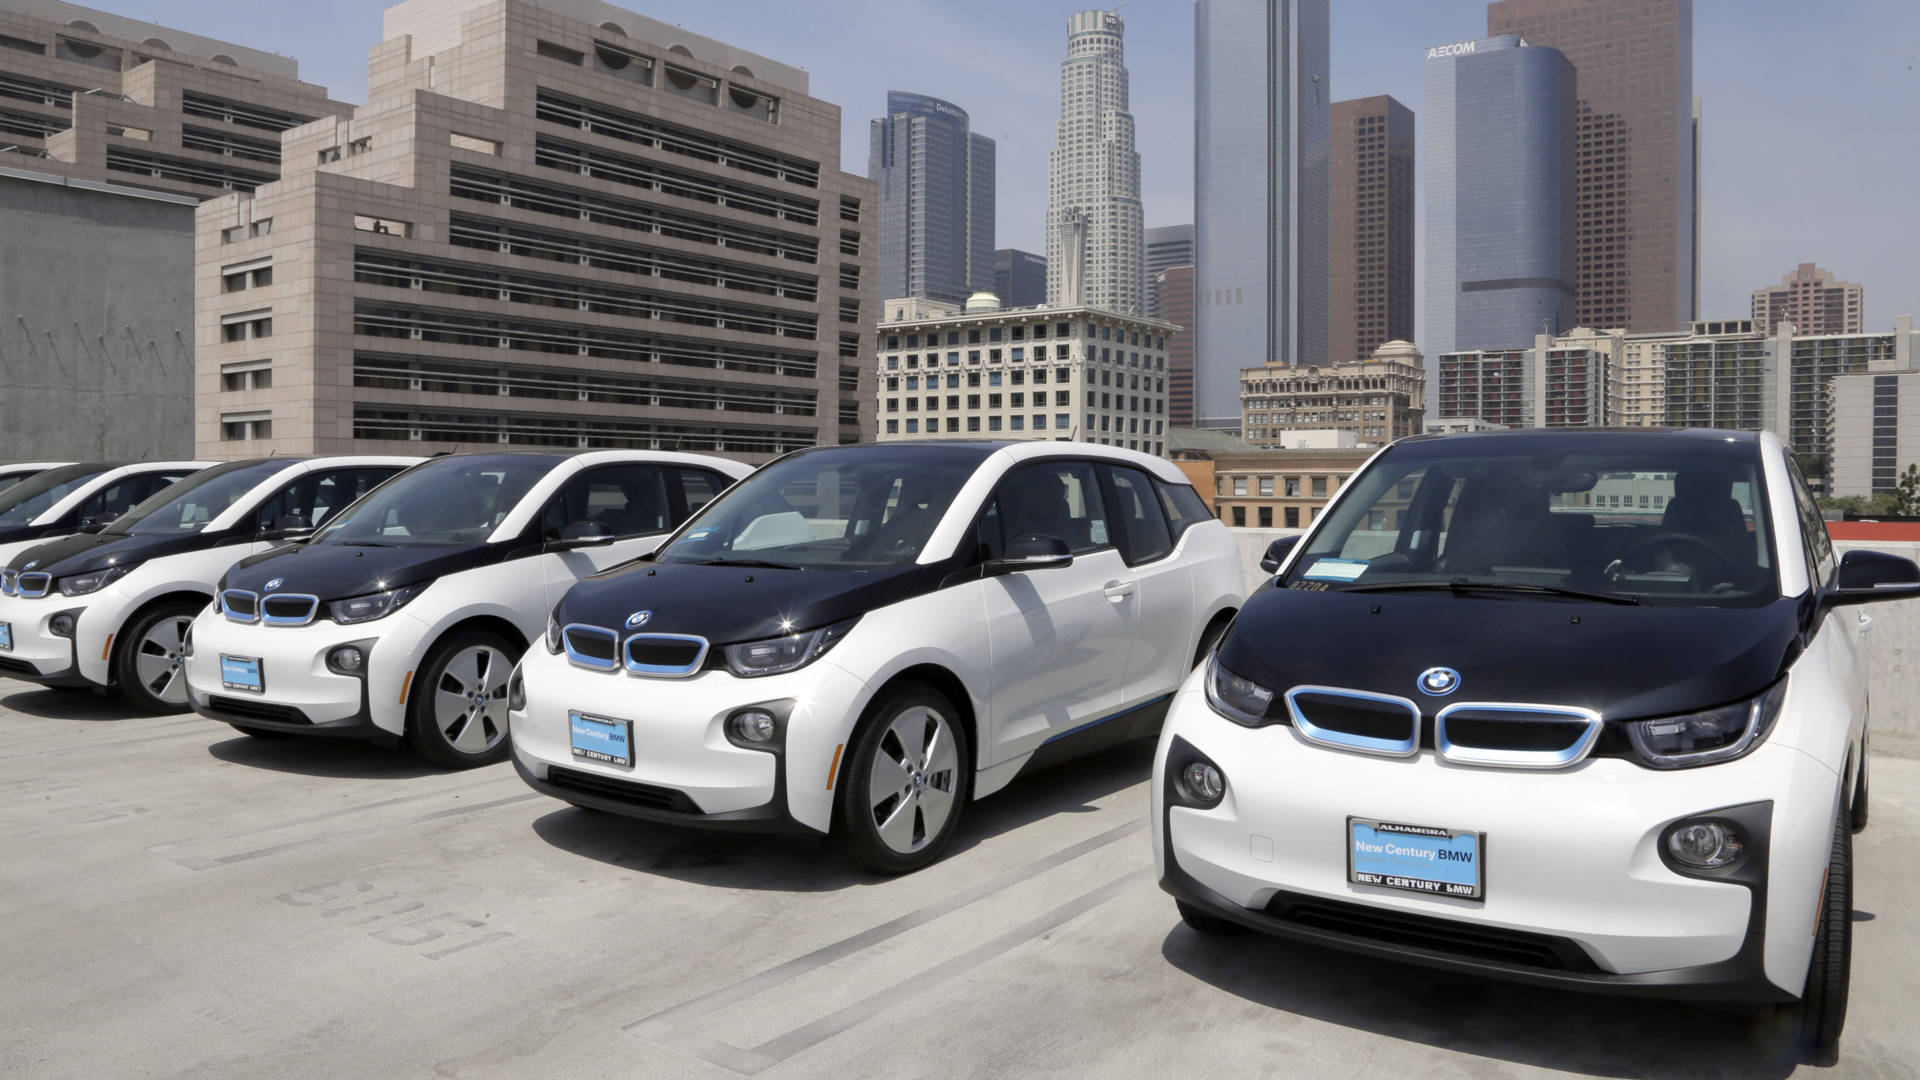 Electric cars are parked at the Los Angeles Police Department in 2016.